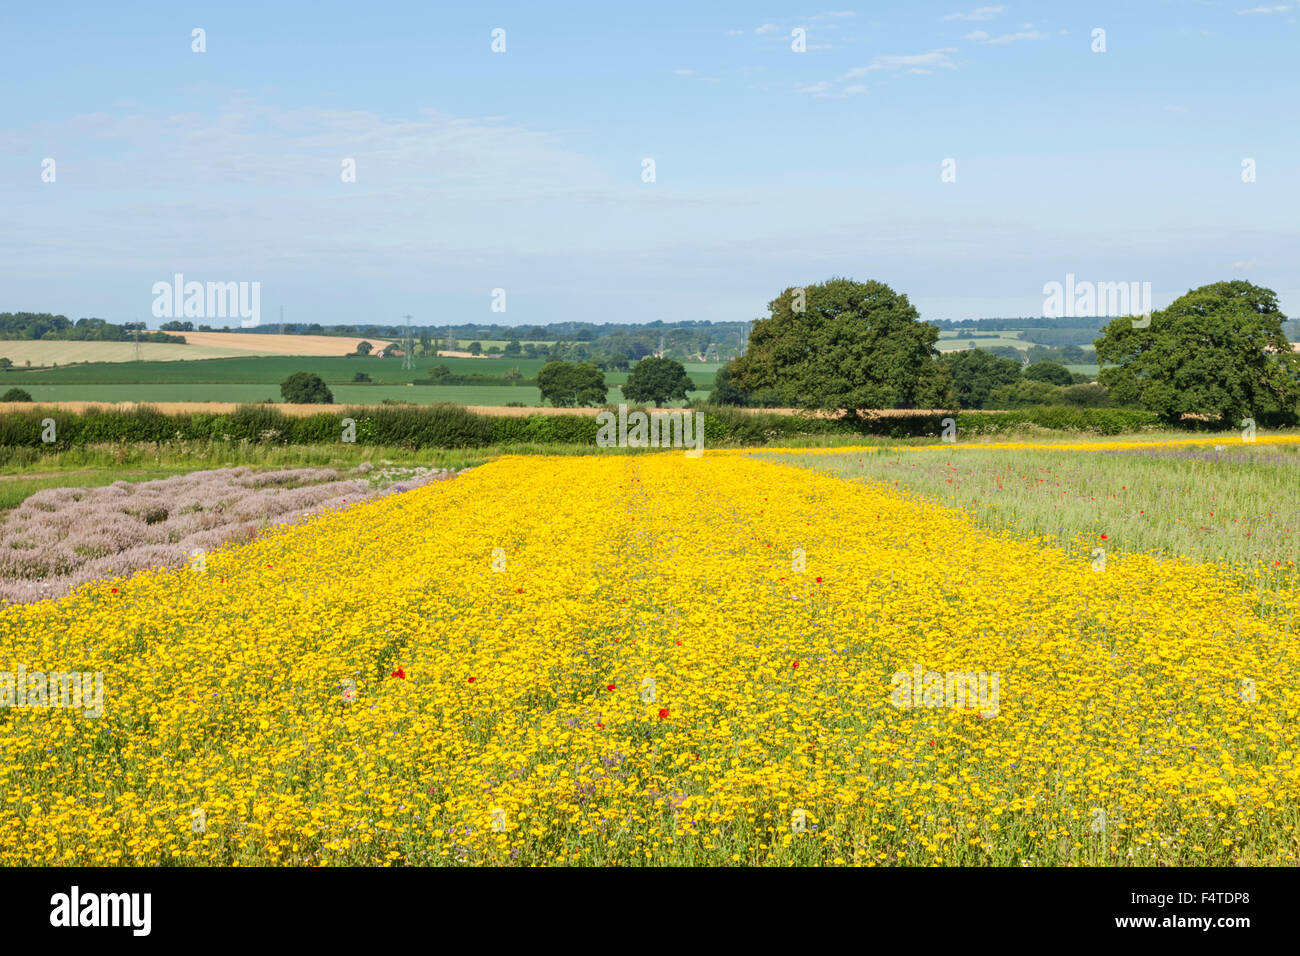 England hampshire yellow flowers and lavender fields stock photo england hampshire yellow flowers and lavender fields mightylinksfo